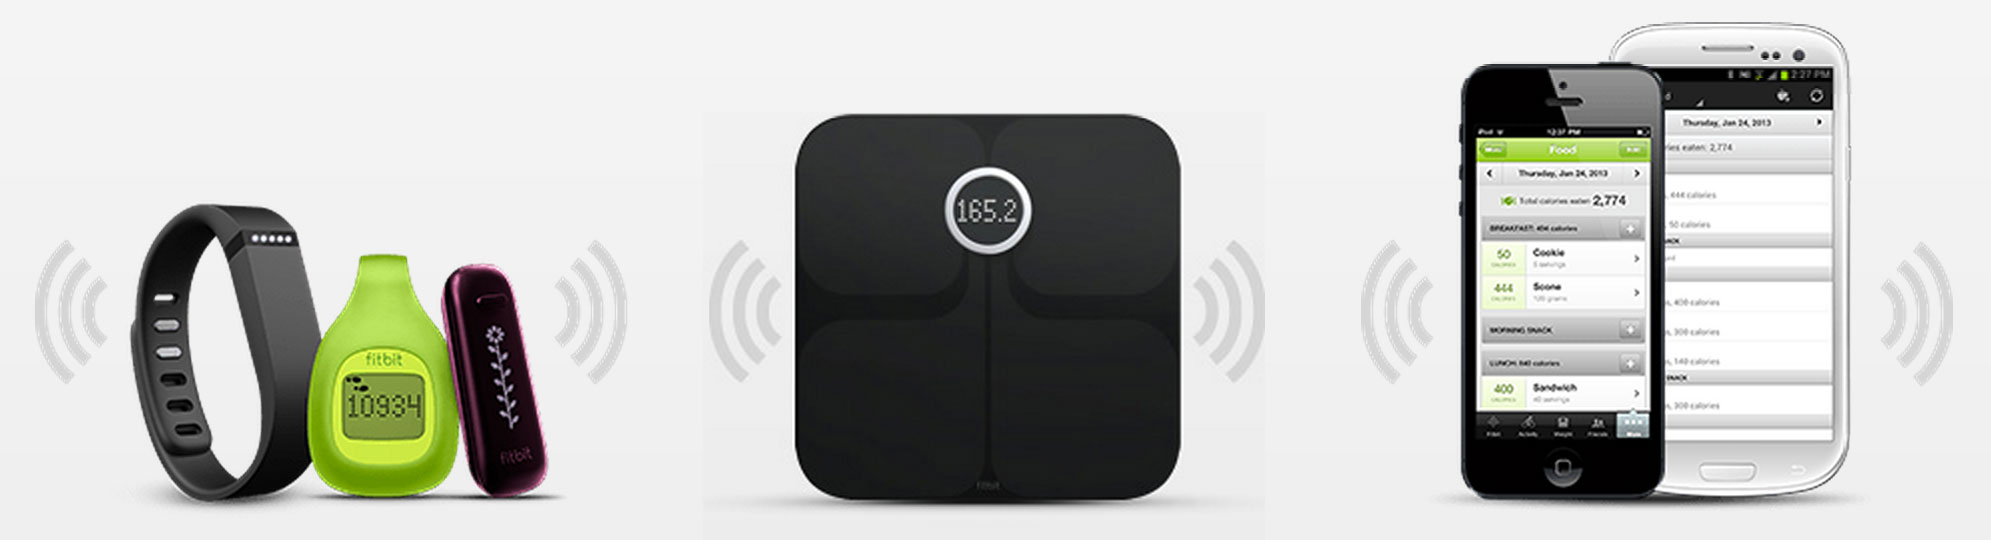 Fitbit system combines wireless trackers, a Wi-Fi smart scale, smartphone apps